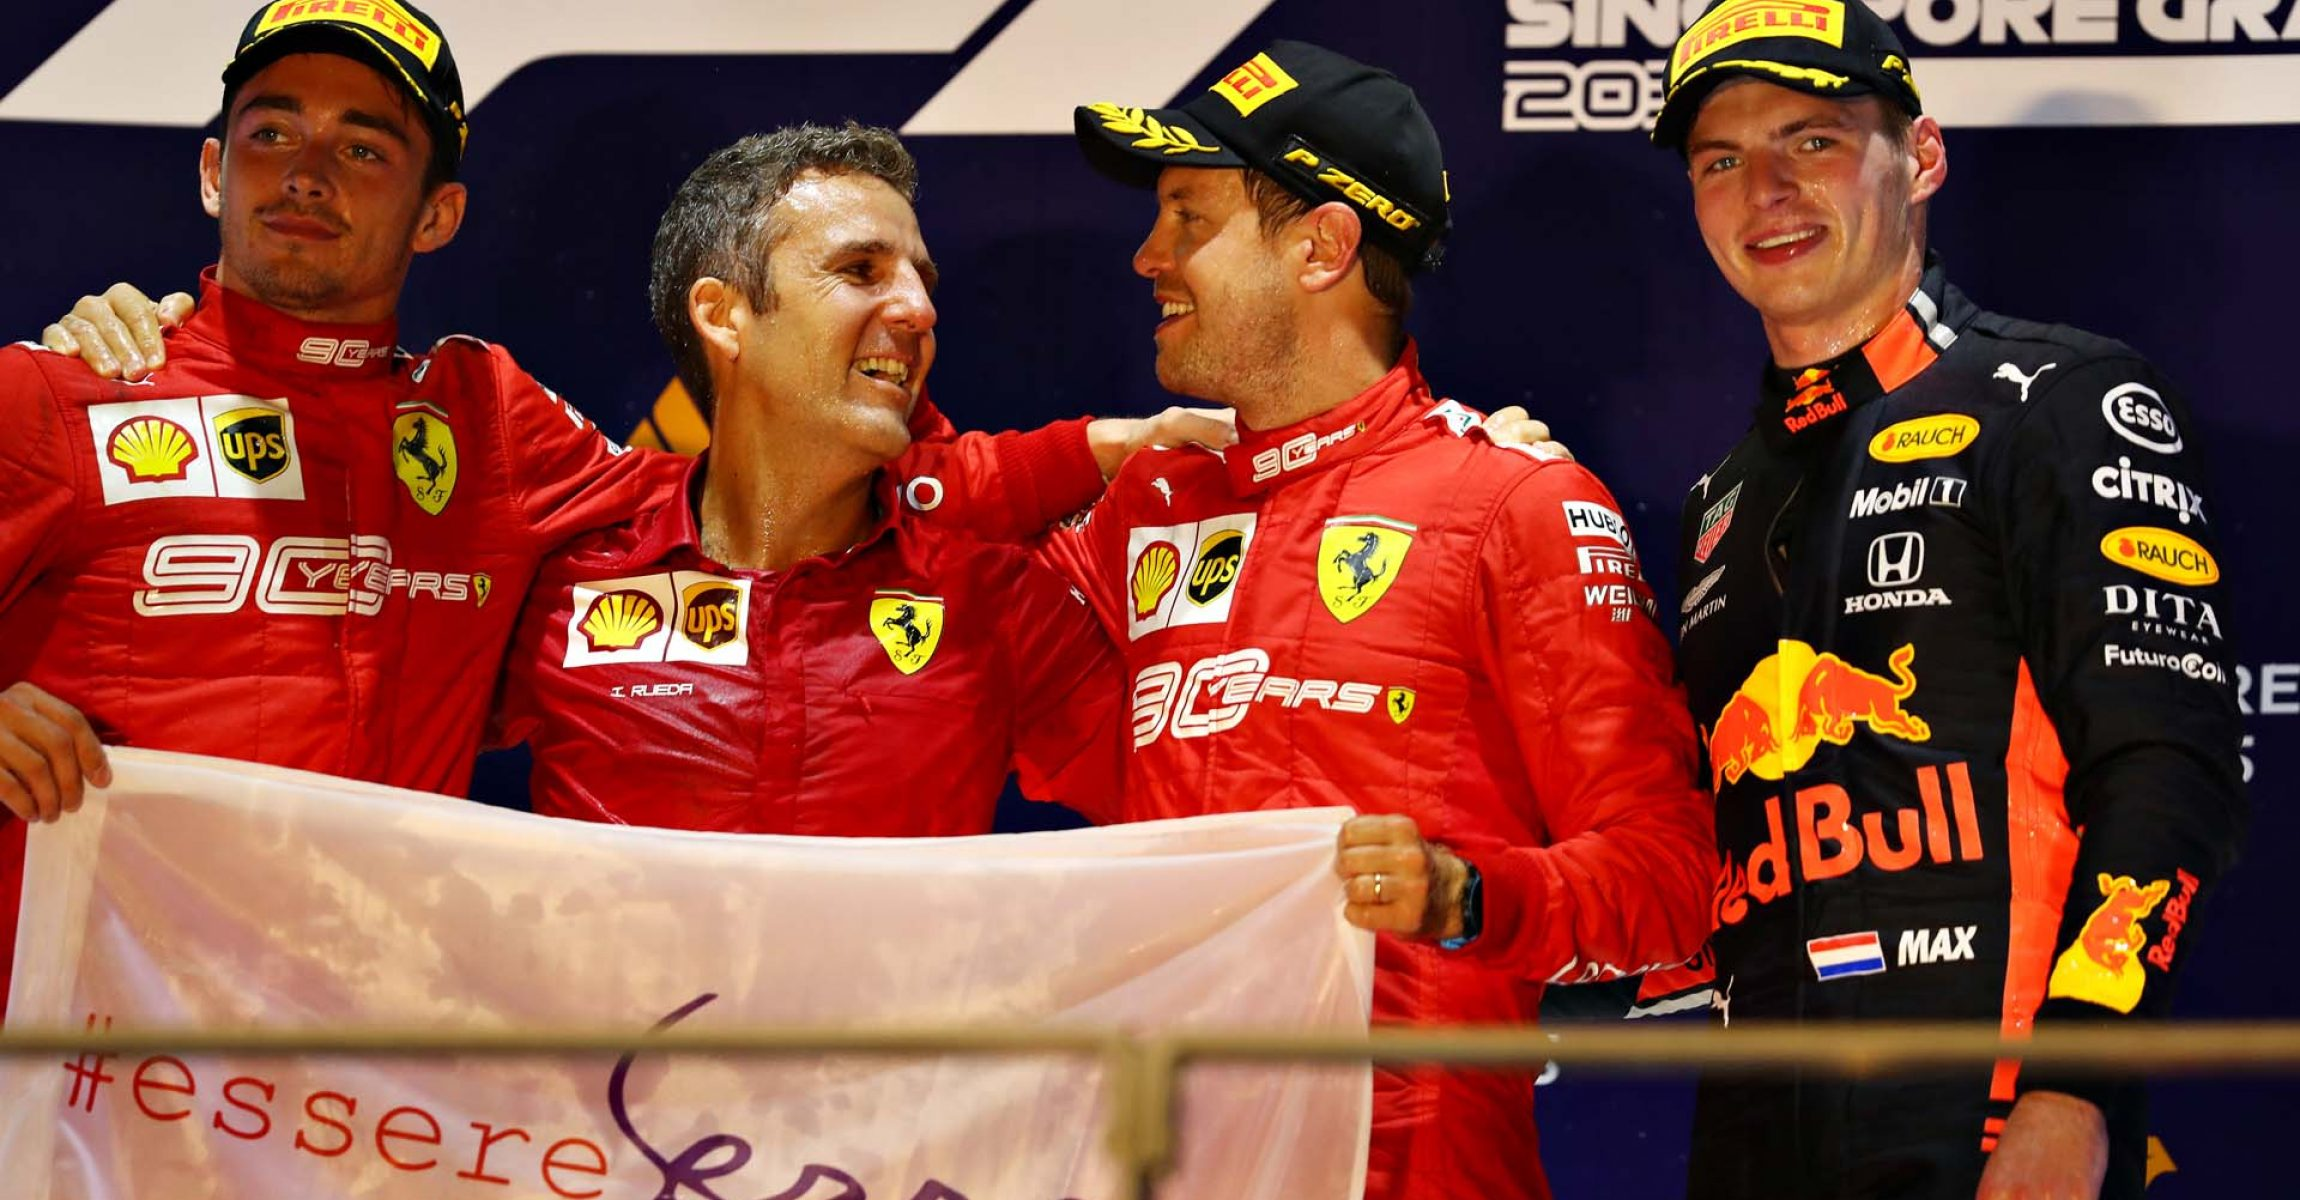 SINGAPORE, SINGAPORE - SEPTEMBER 22: Top three finishers Sebastian Vettel of Germany and Ferrari, Charles Leclerc of Monaco and Ferrari and Max Verstappen of Netherlands and Red Bull Racing celebrate on the podium during the F1 Grand Prix of Singapore at Marina Bay Street Circuit on September 22, 2019 in Singapore. (Photo by Mark Thompson/Getty Images) // Getty Images / Red Bull Content Pool  // AP-21NB3SZZ91W11 // Usage for editorial use only //